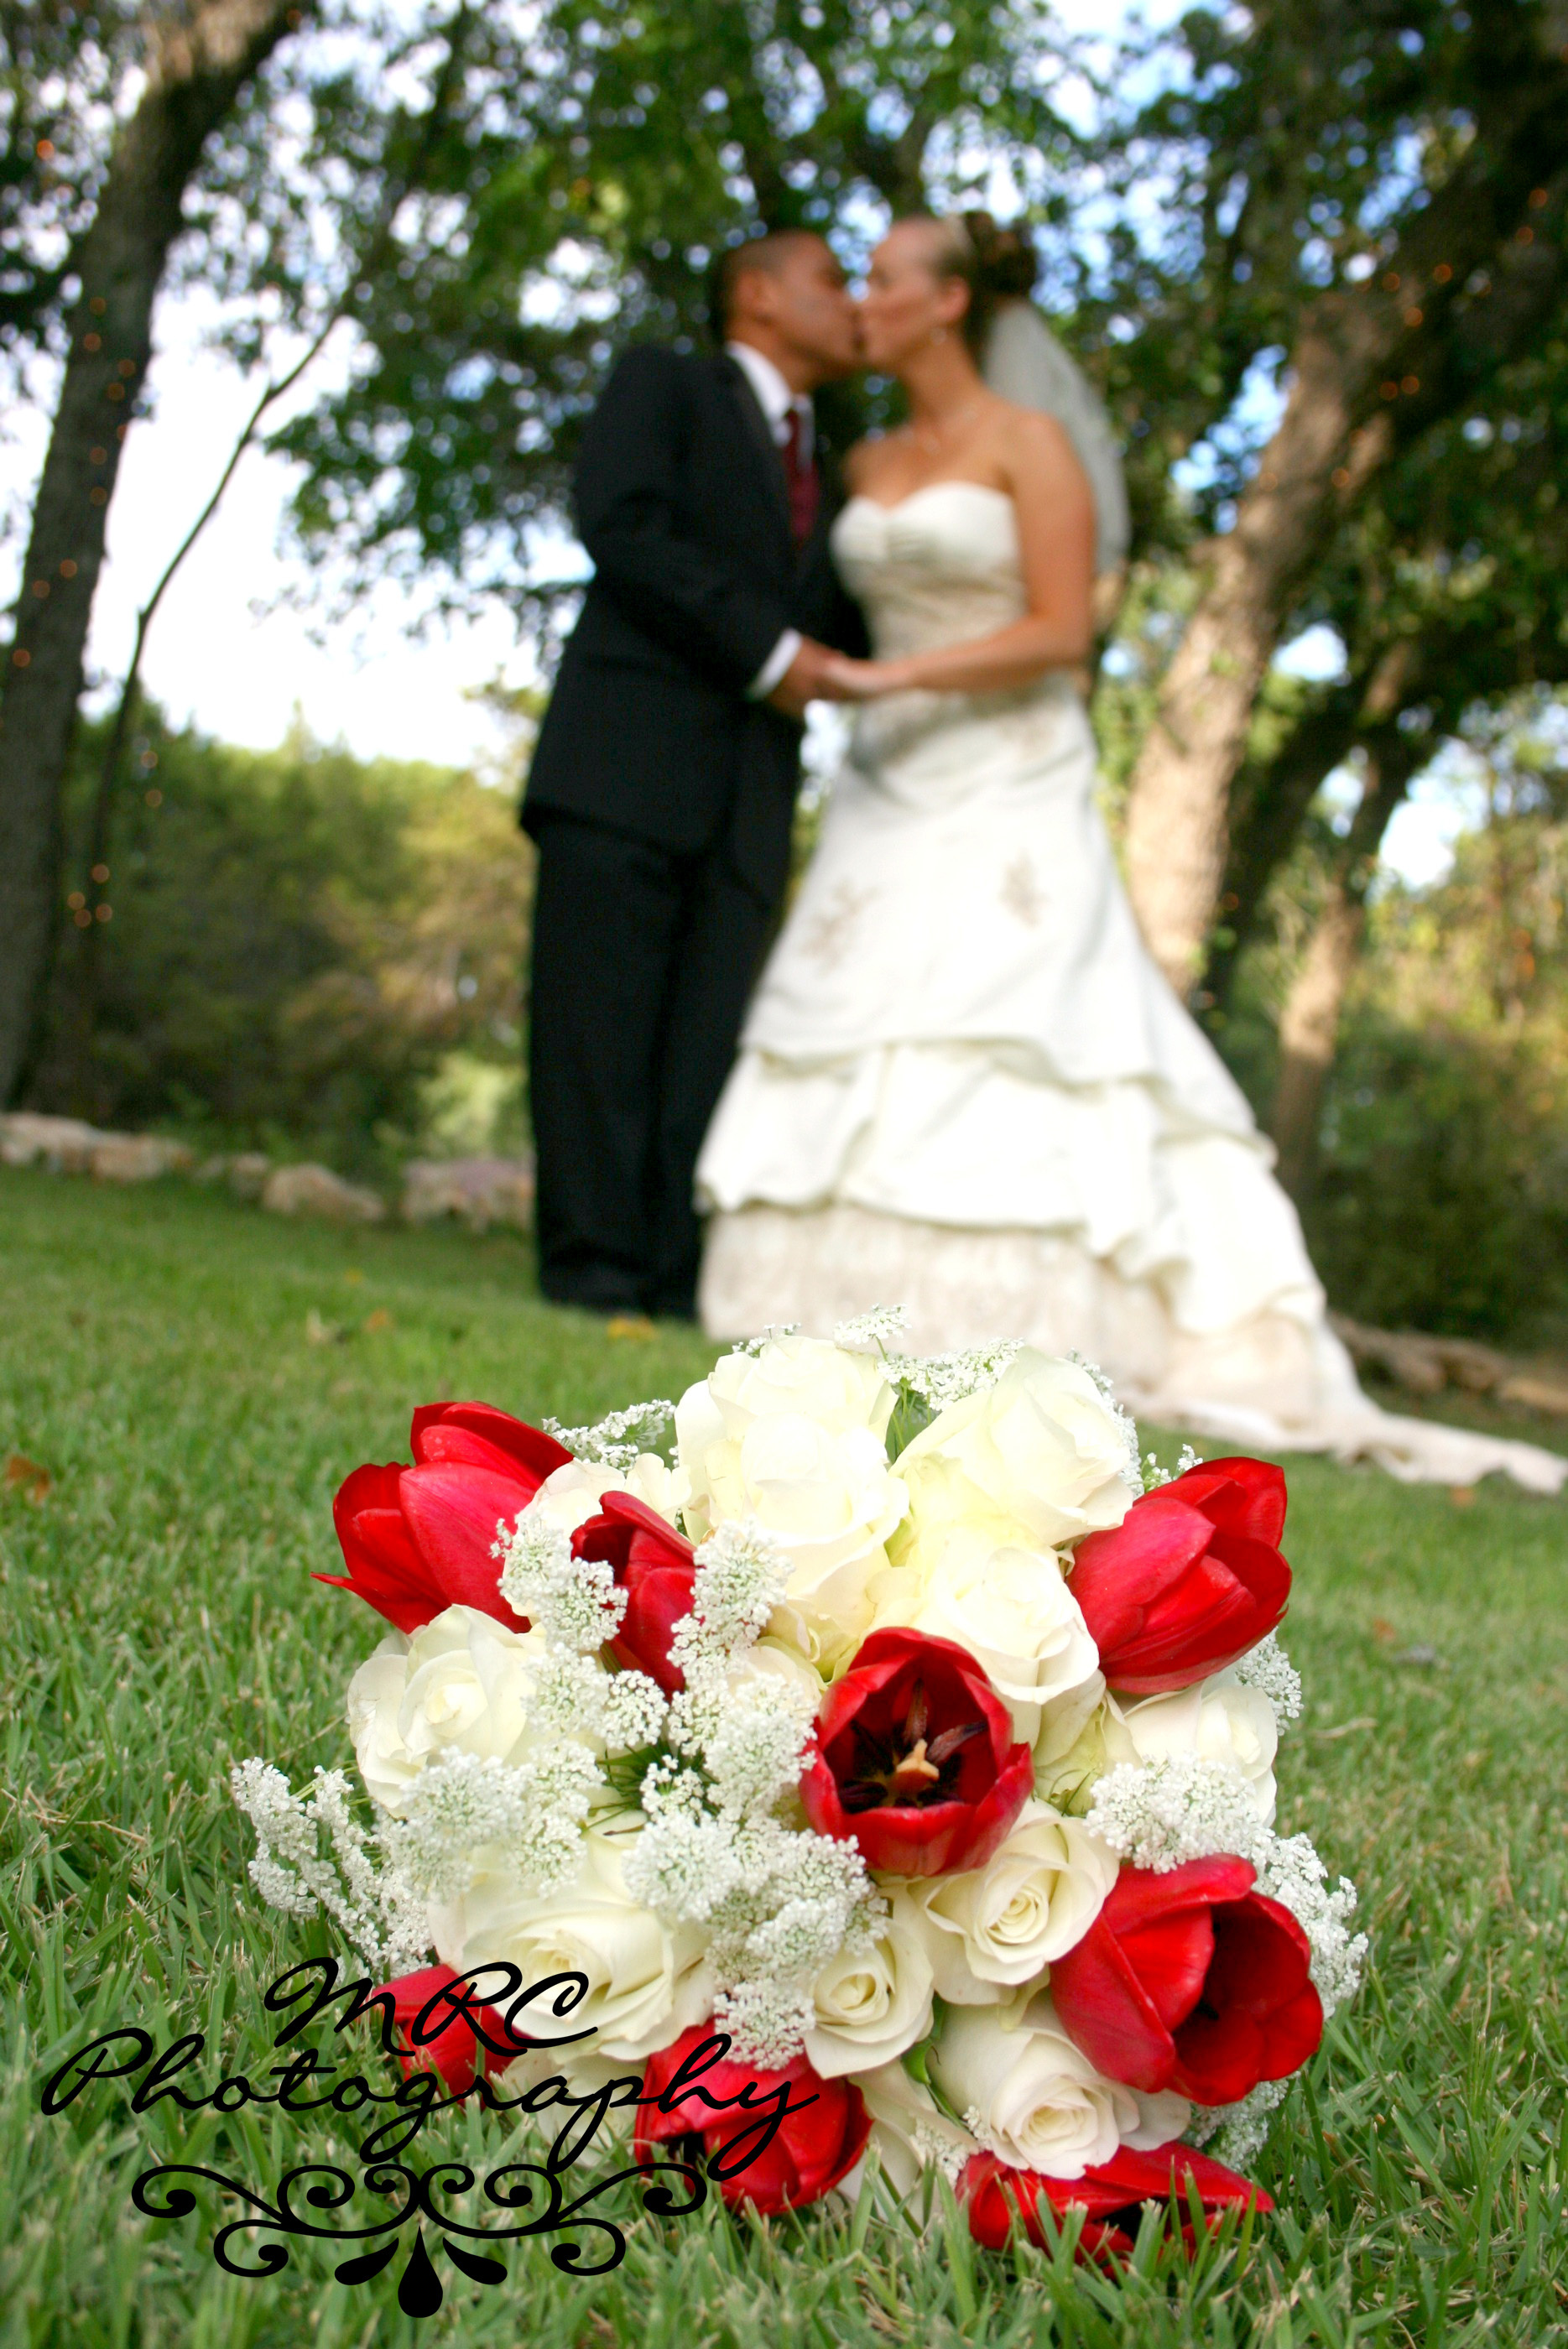 Ceremony, Flowers & Decor, Wedding Dresses, Fashion, white, red, blue, green, black, dress, Ceremony Flowers, Flowers, Mrc photography, Flower Wedding Dresses